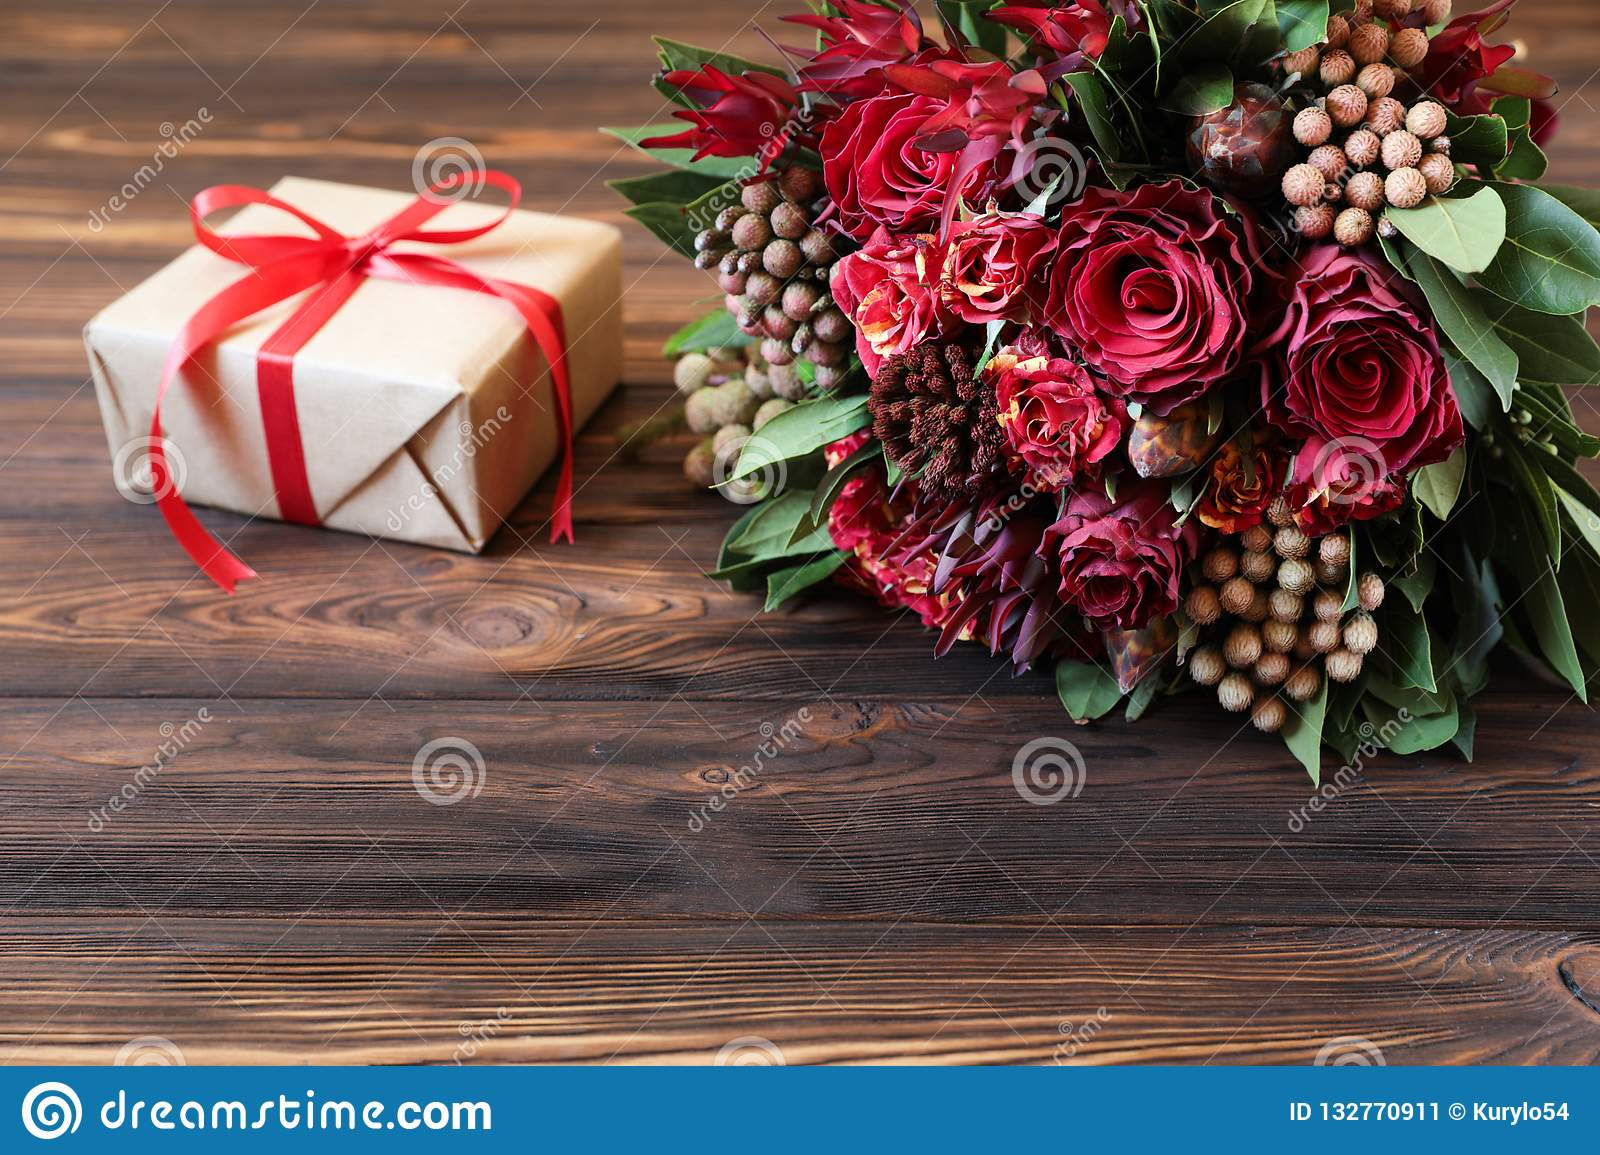 Beautiful fresh flower arrangement of red roses and gift box.